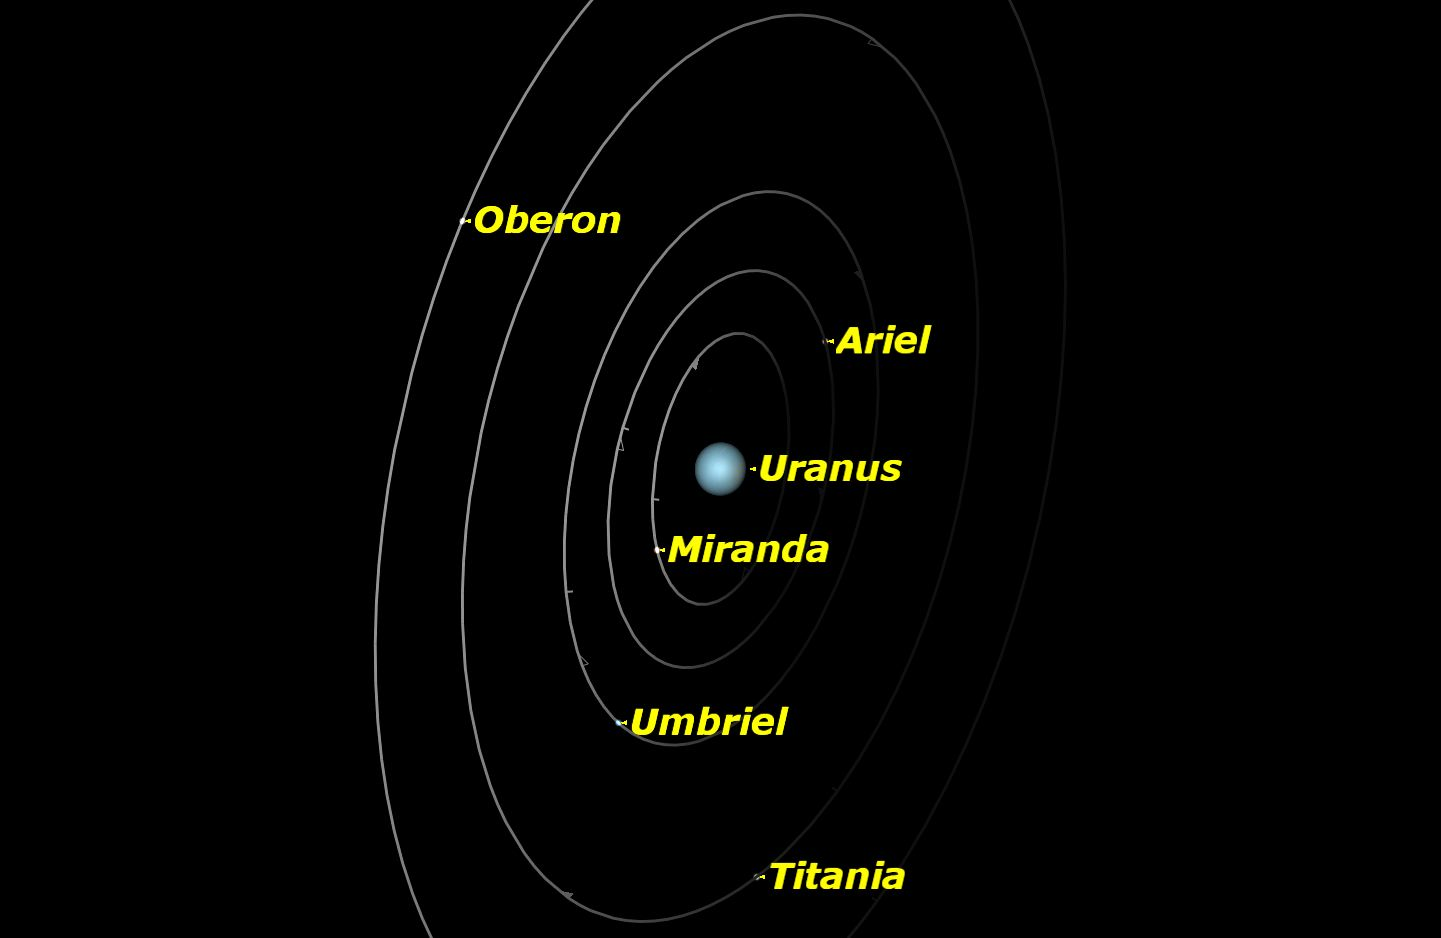 September-Uranus.jpg